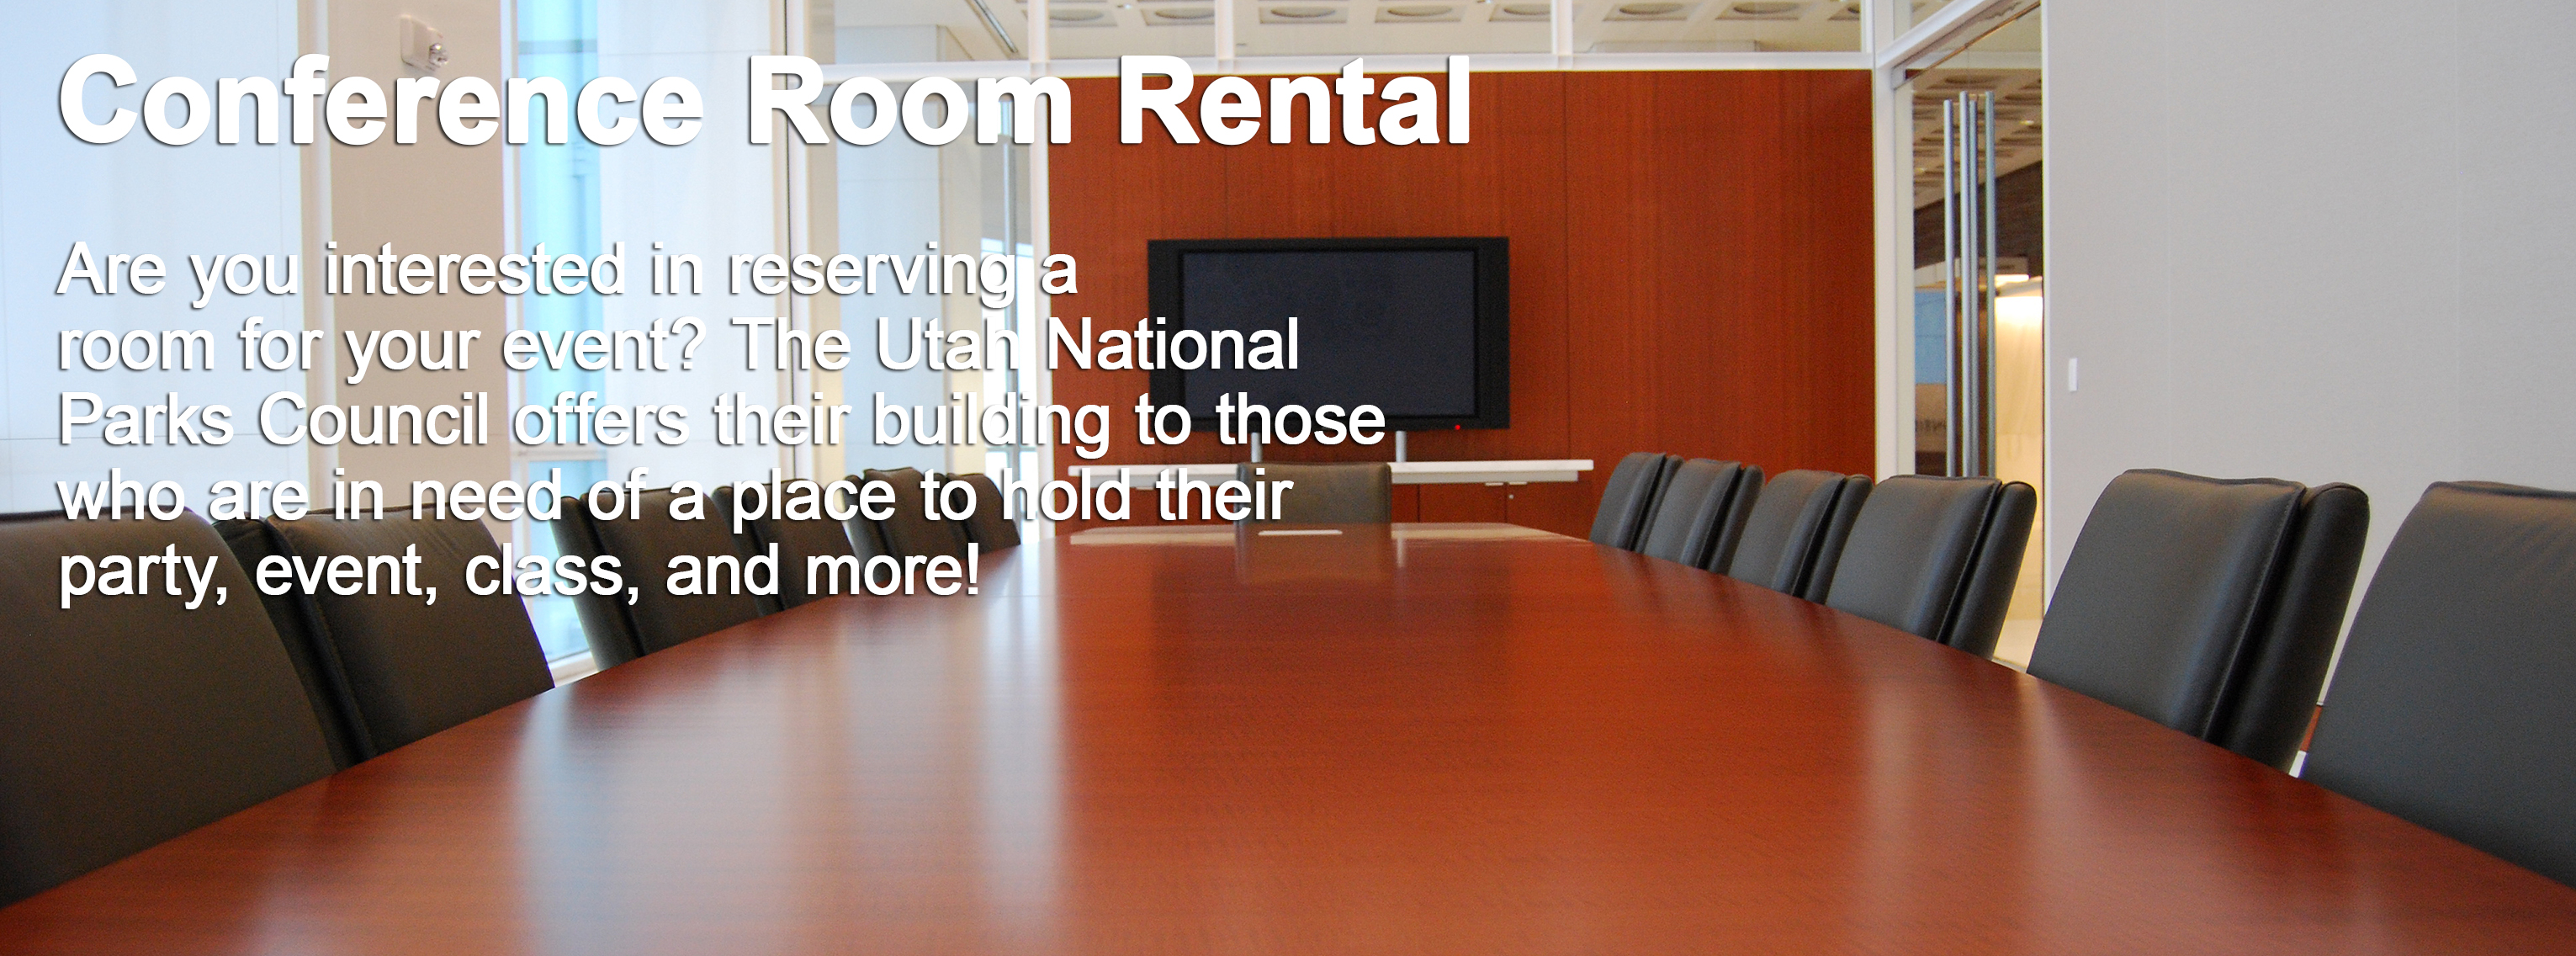 Conference Room Rentals